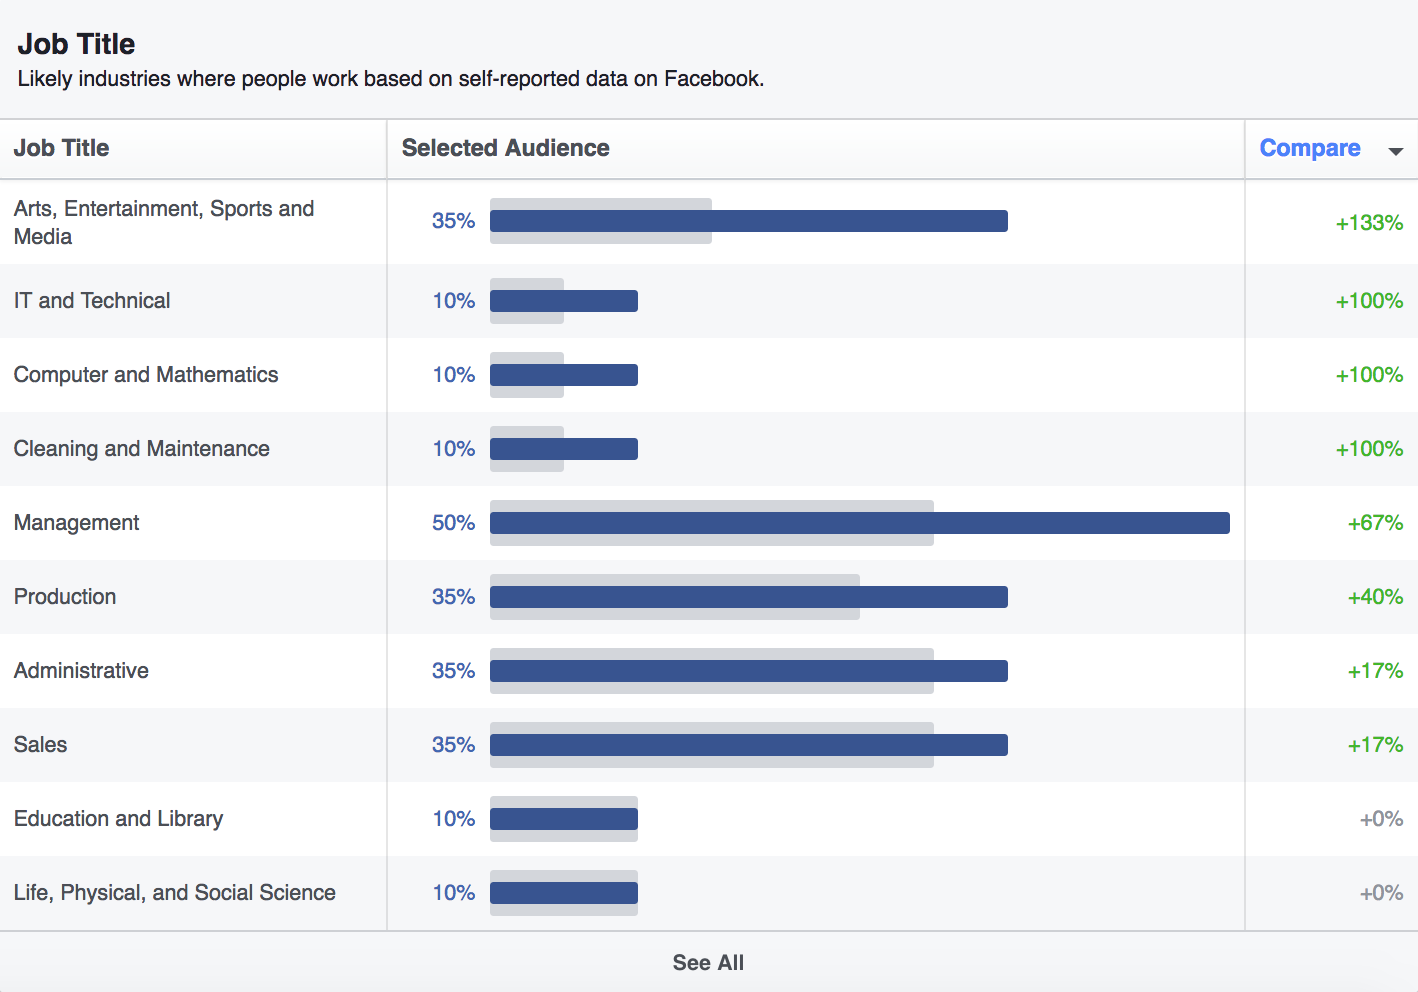 9 Keys to Truly Excellent Facebook Marketing | Social Media Today